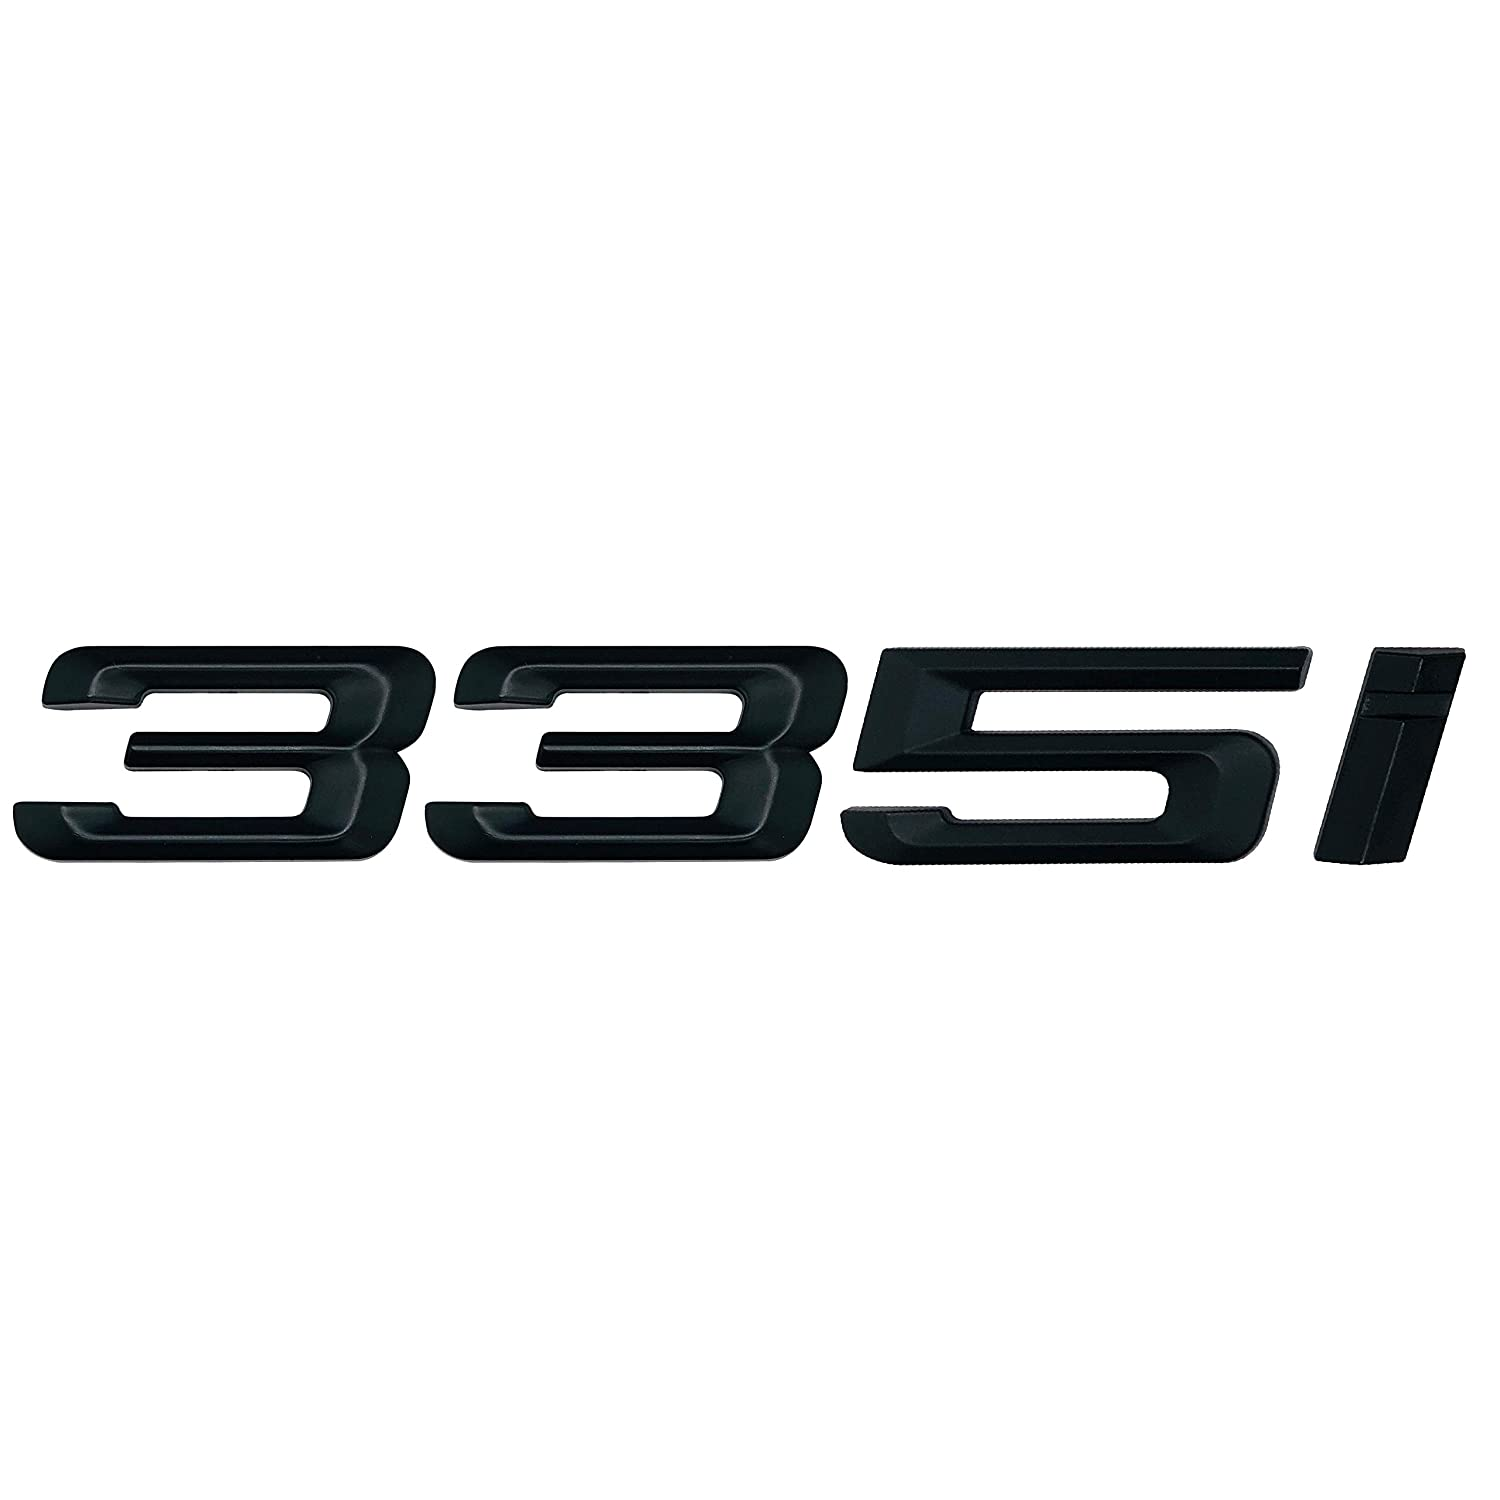 E93 F30 E46 E90 Negro Mate 335i Lettering Trasero Boot Lid Trunk Badge Emblema For 3 Series E36 F31 E92 G20 Models F34 E91